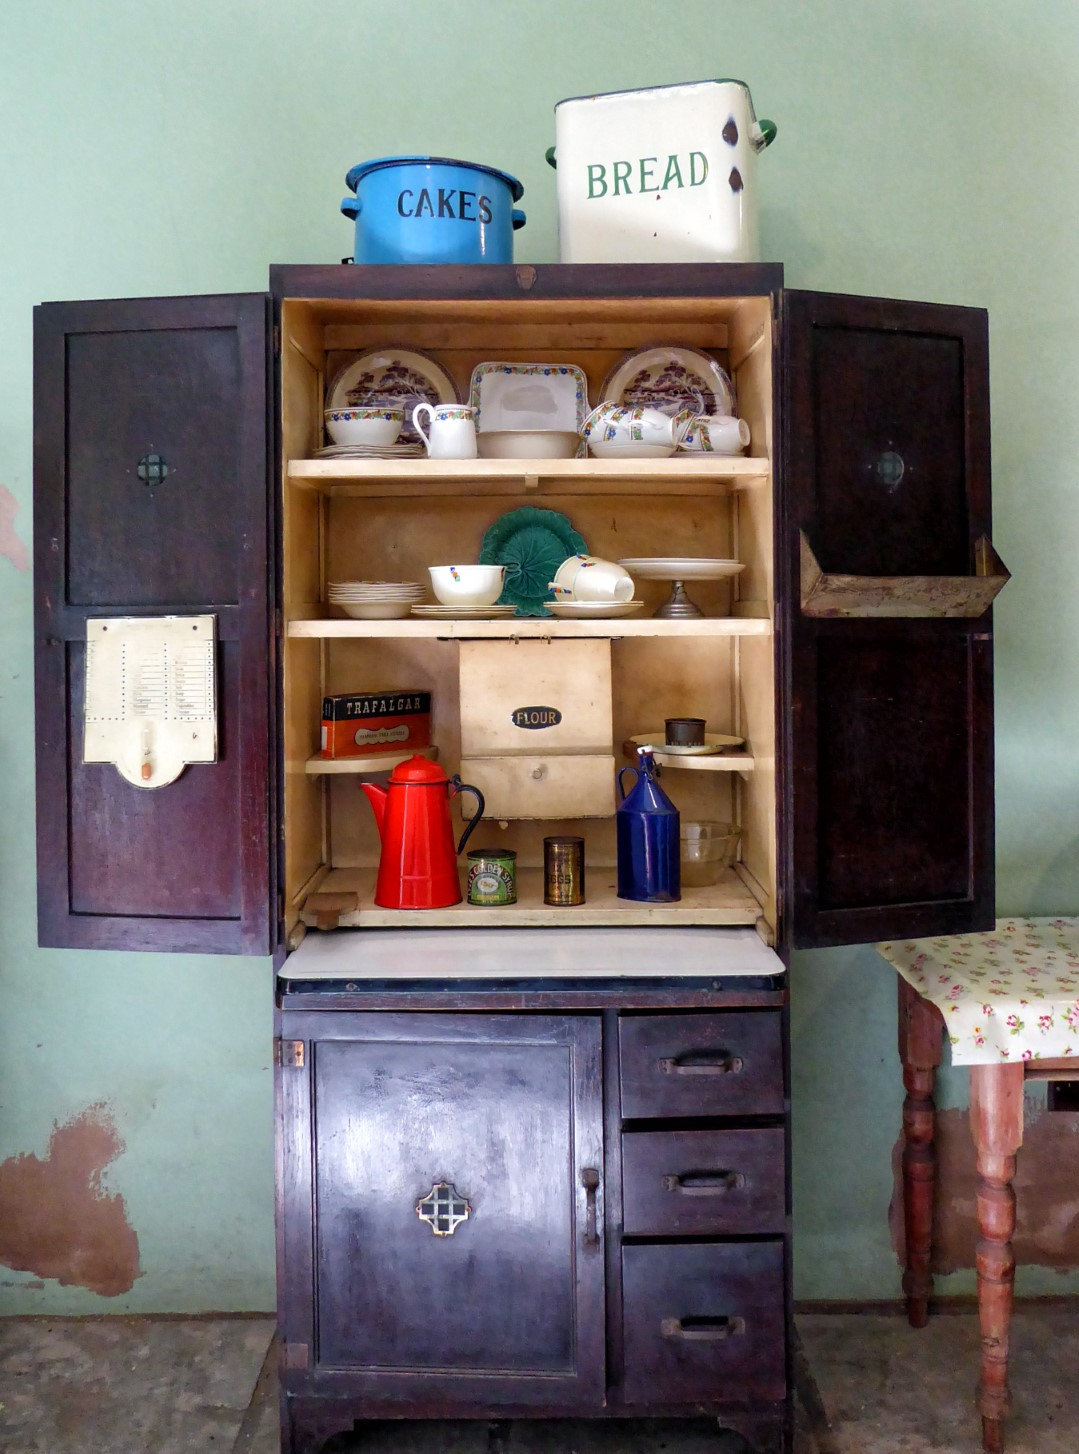 Old-fashioned cupboard with plates and utensils